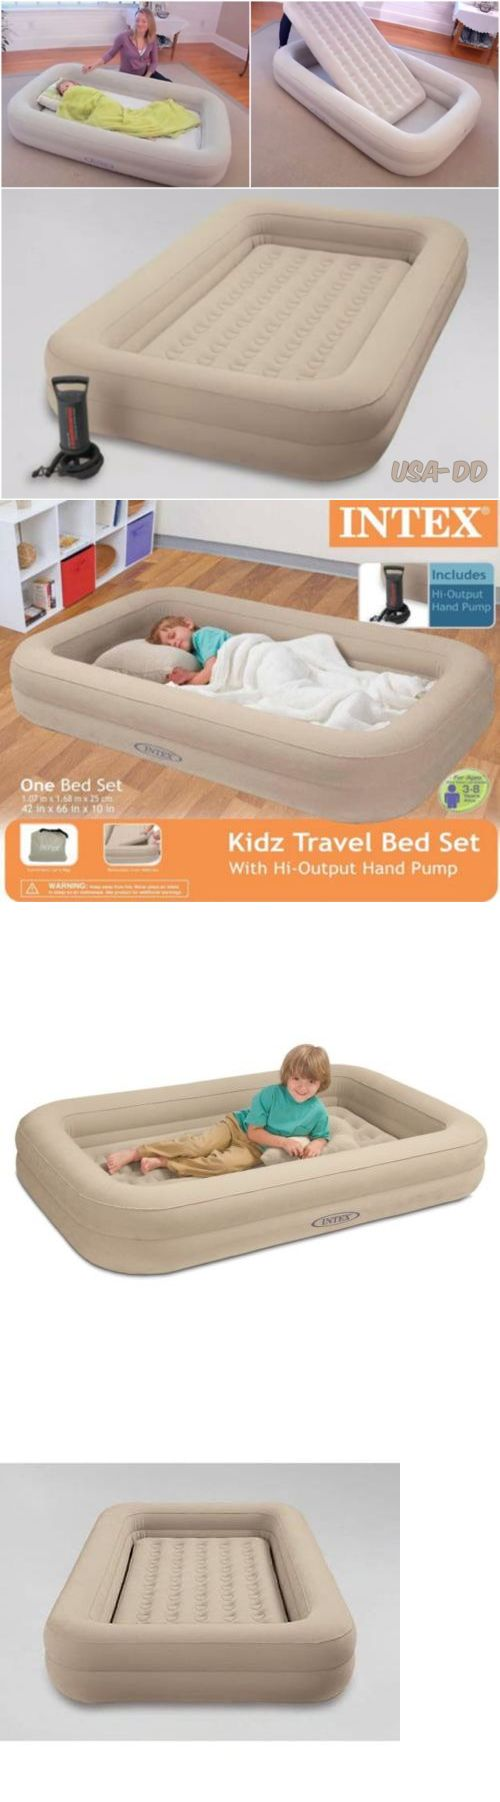 Gocrib adventure crib for sale - Mattresses And Pads 36114 Intex Portable Toddler Travel Bed Set Kids Child Inflatable Air Bed